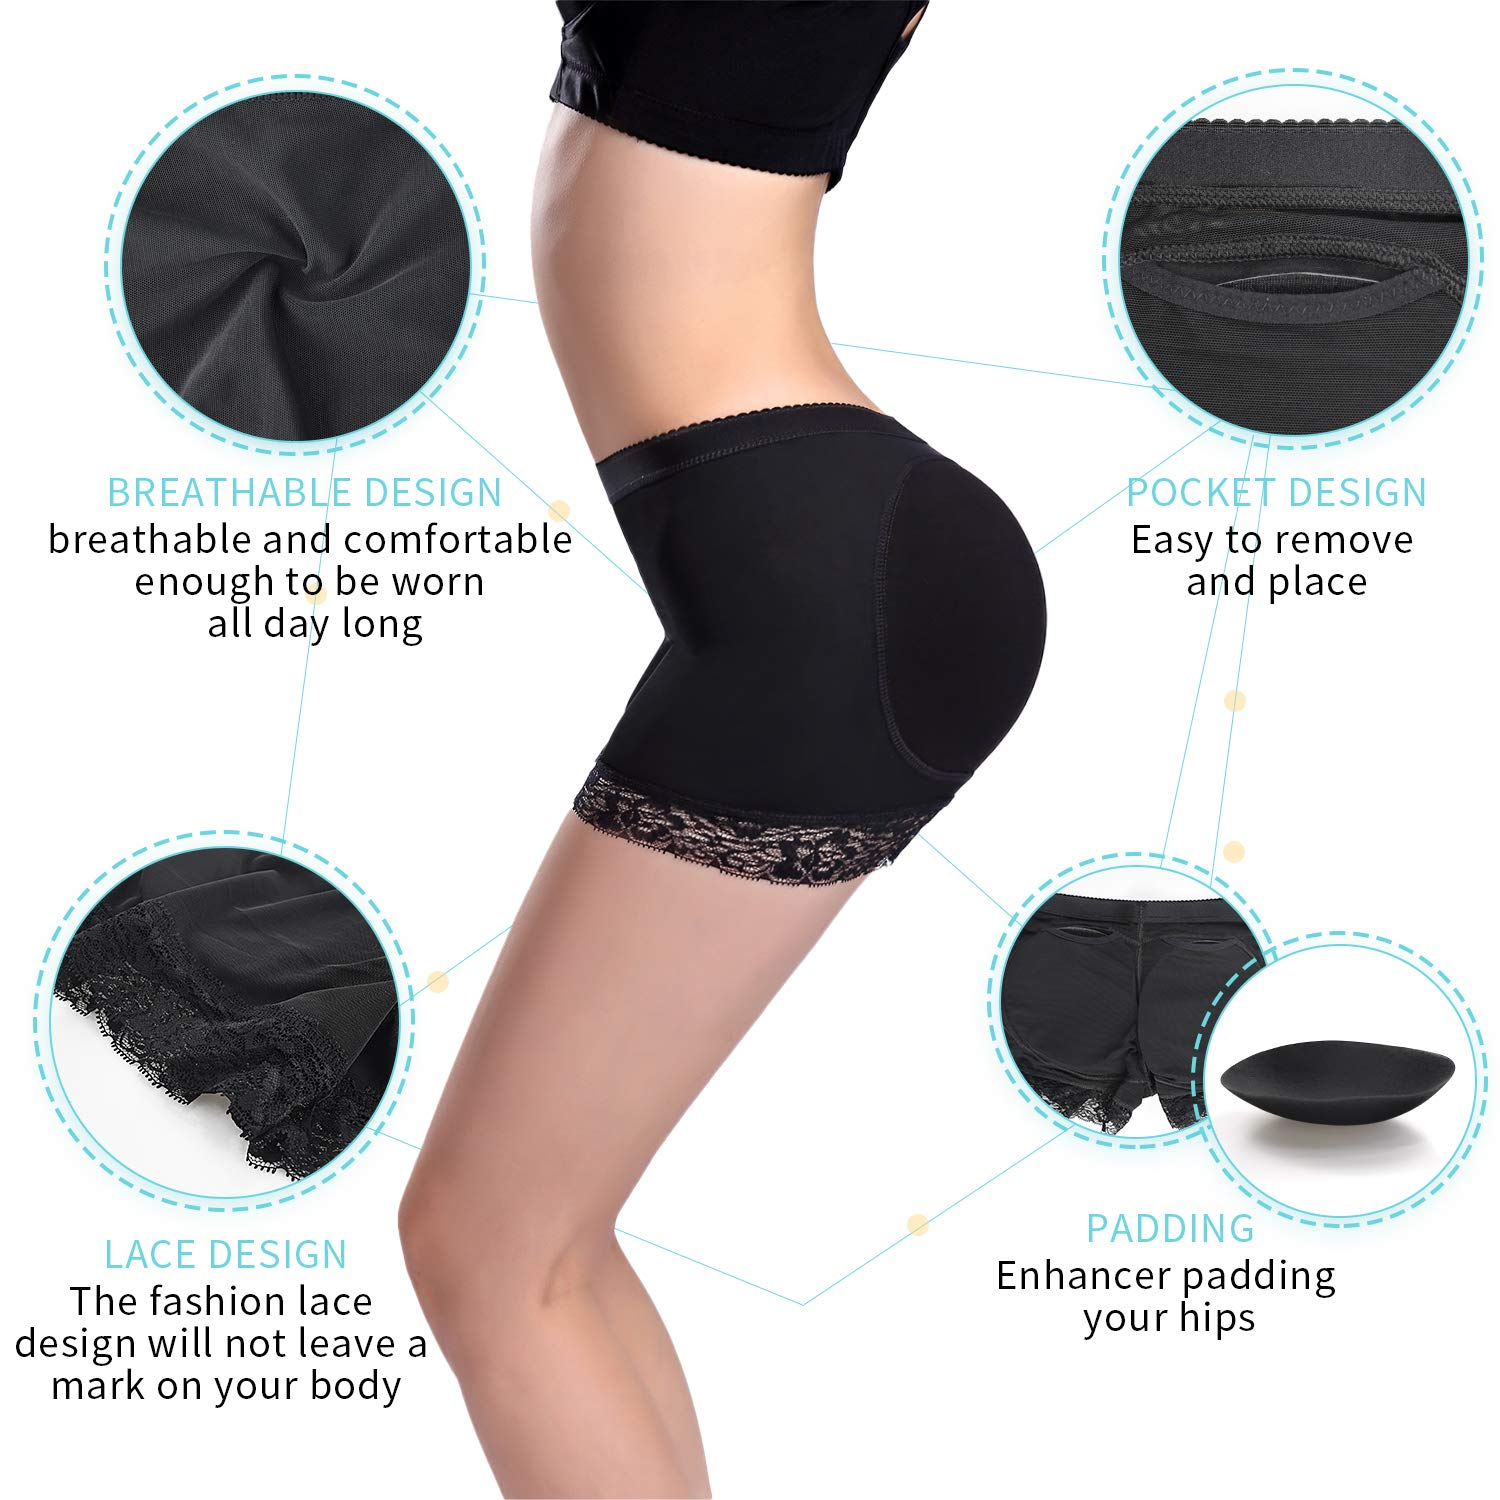 54d7e0cac18b ... SKYFOXE Womens Butt Lifter Shapewear Shorts-Enhancer Padded Control  Panties- Boyshort Fake Buttock Hip ...